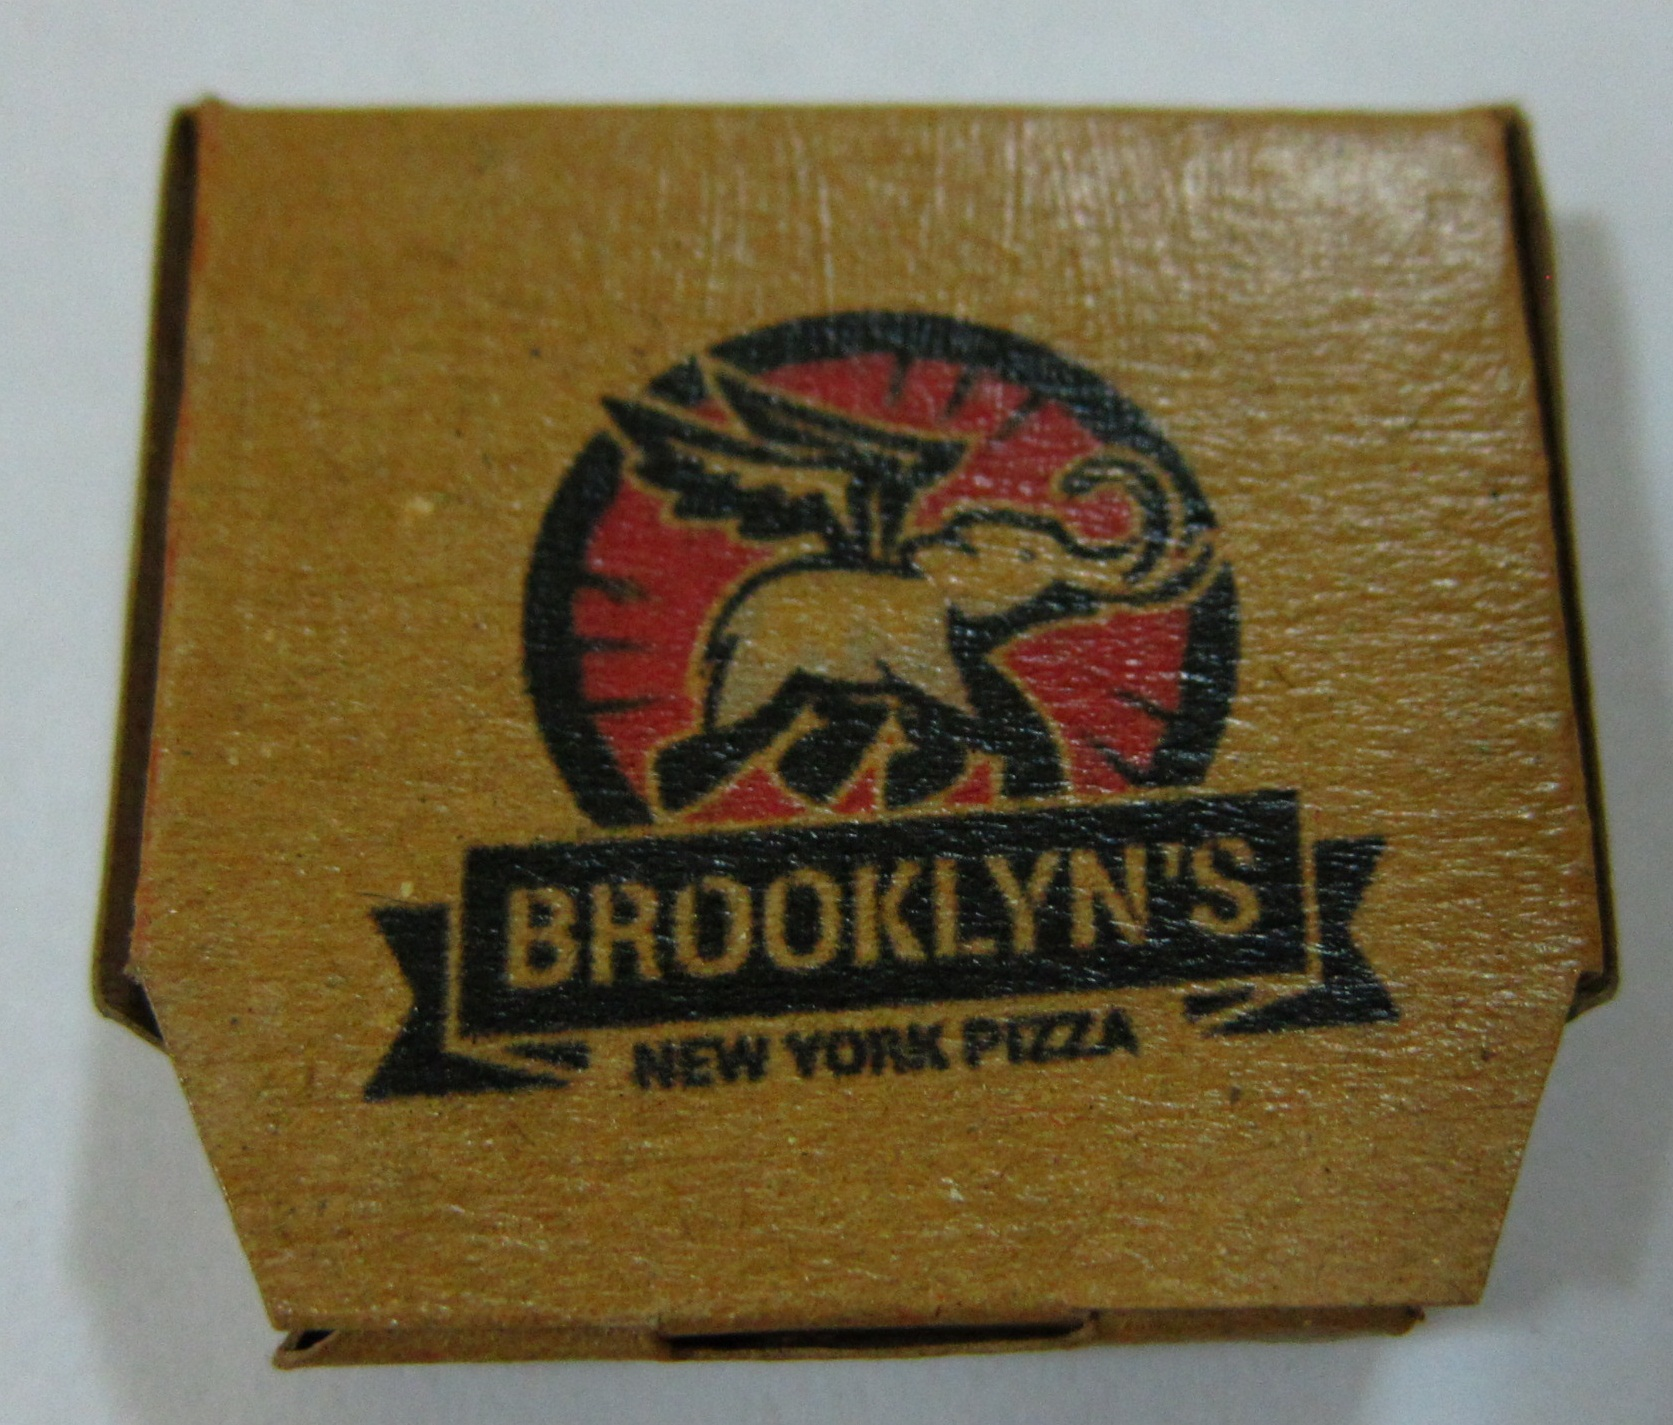 La Filipizza by Brooklyn's New York Pizza